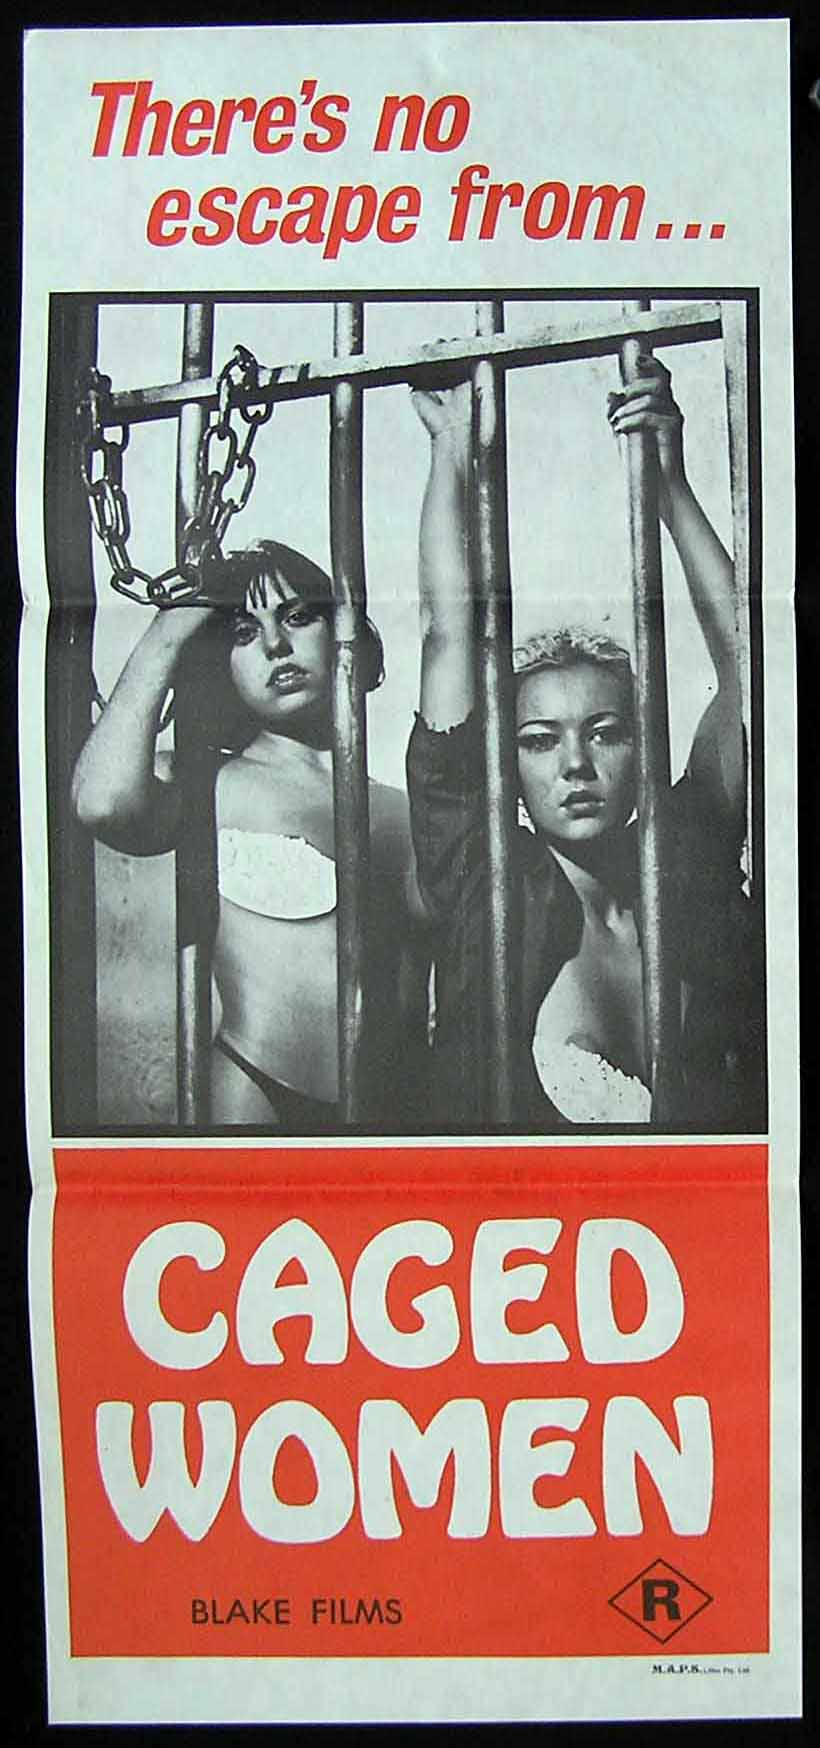 CAGED WOMEN '70s Prison Bad Girls Sexploitation Movie Poster